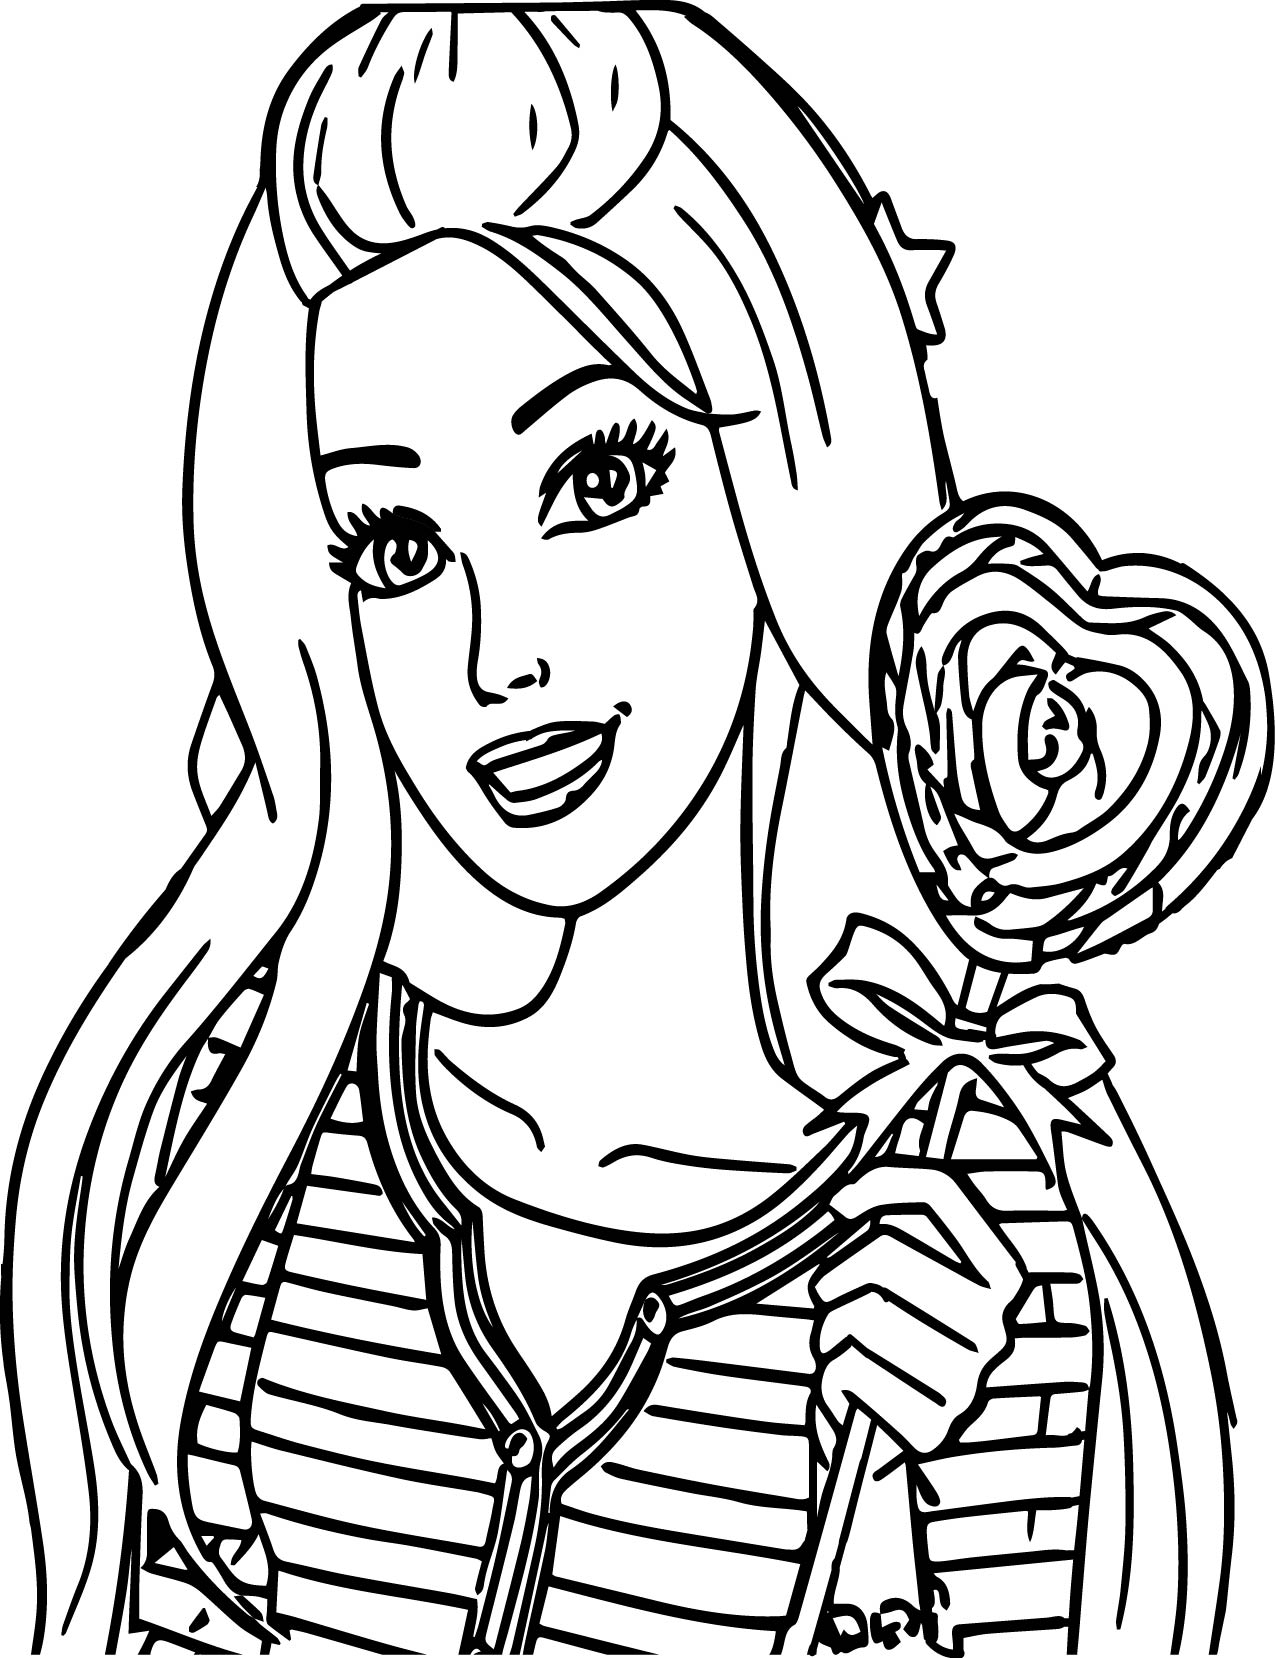 barbie doll colouring barbie doll coloring pages coloring home doll colouring barbie